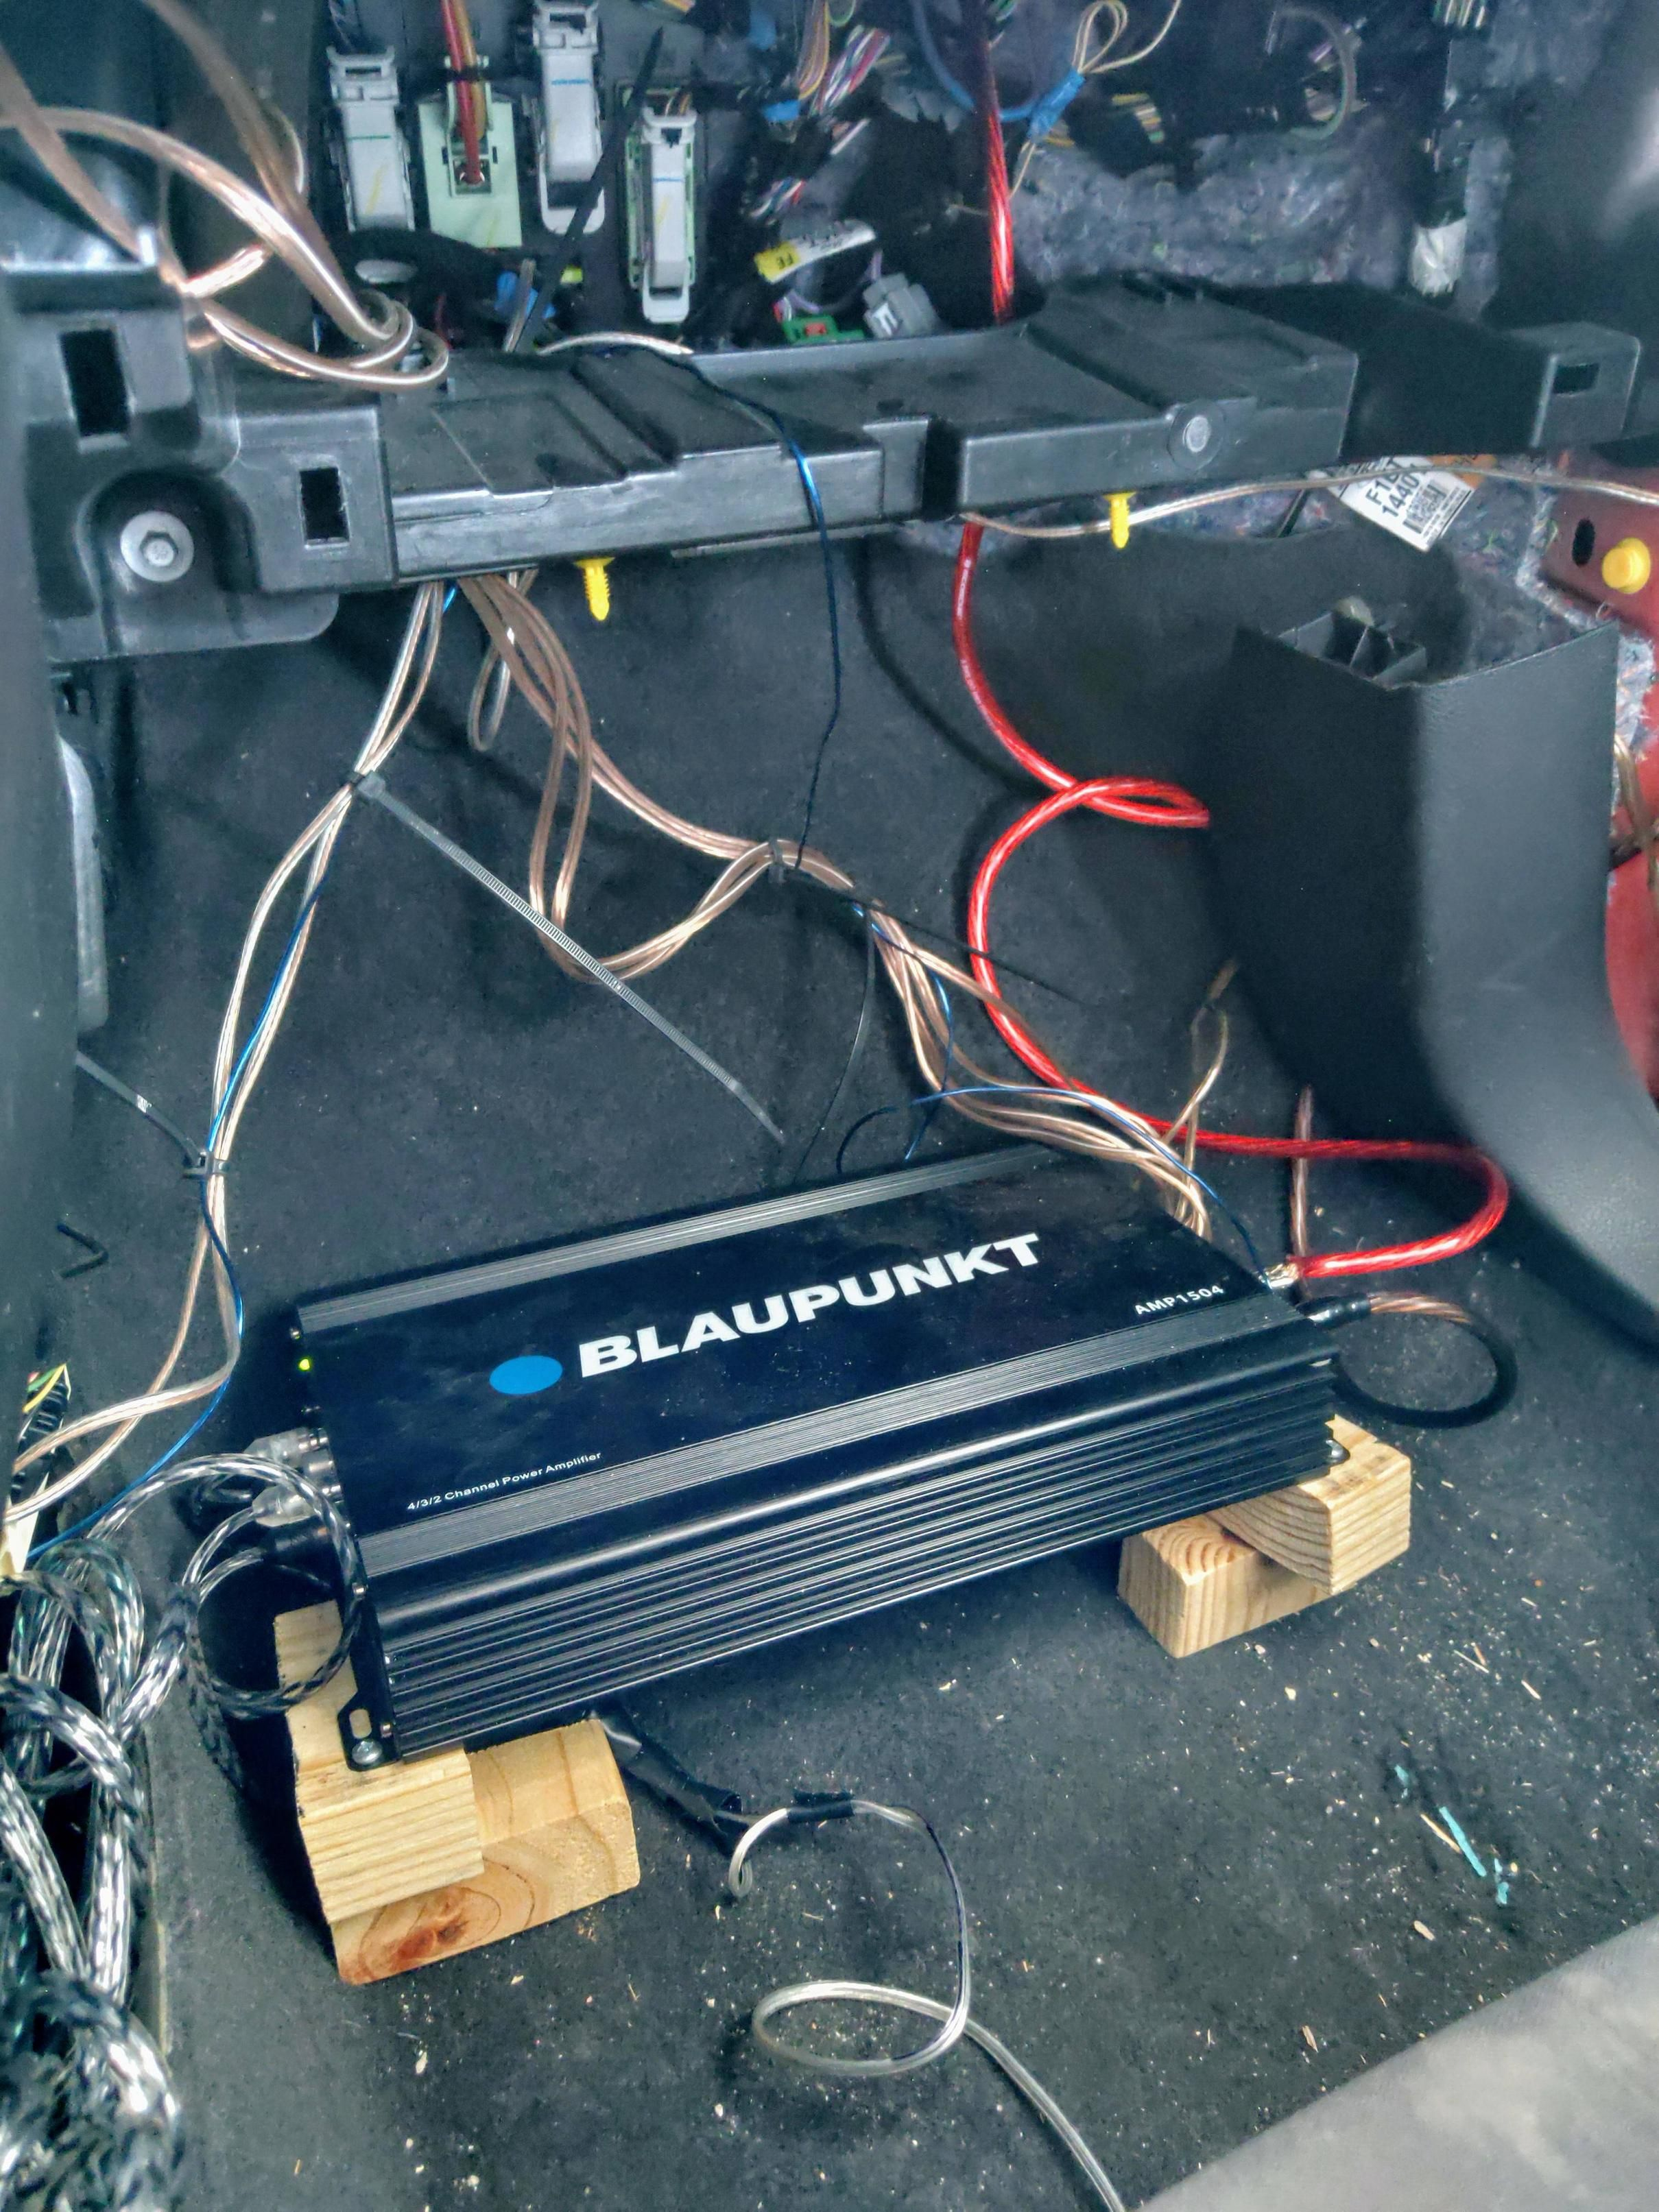 Here S My 4ch Amp Install On The Passenger Side Floor With A Computer Fan Under It It S Pushing 4 Speakers And A Amp Install Car Stereo Systems Computer Fan